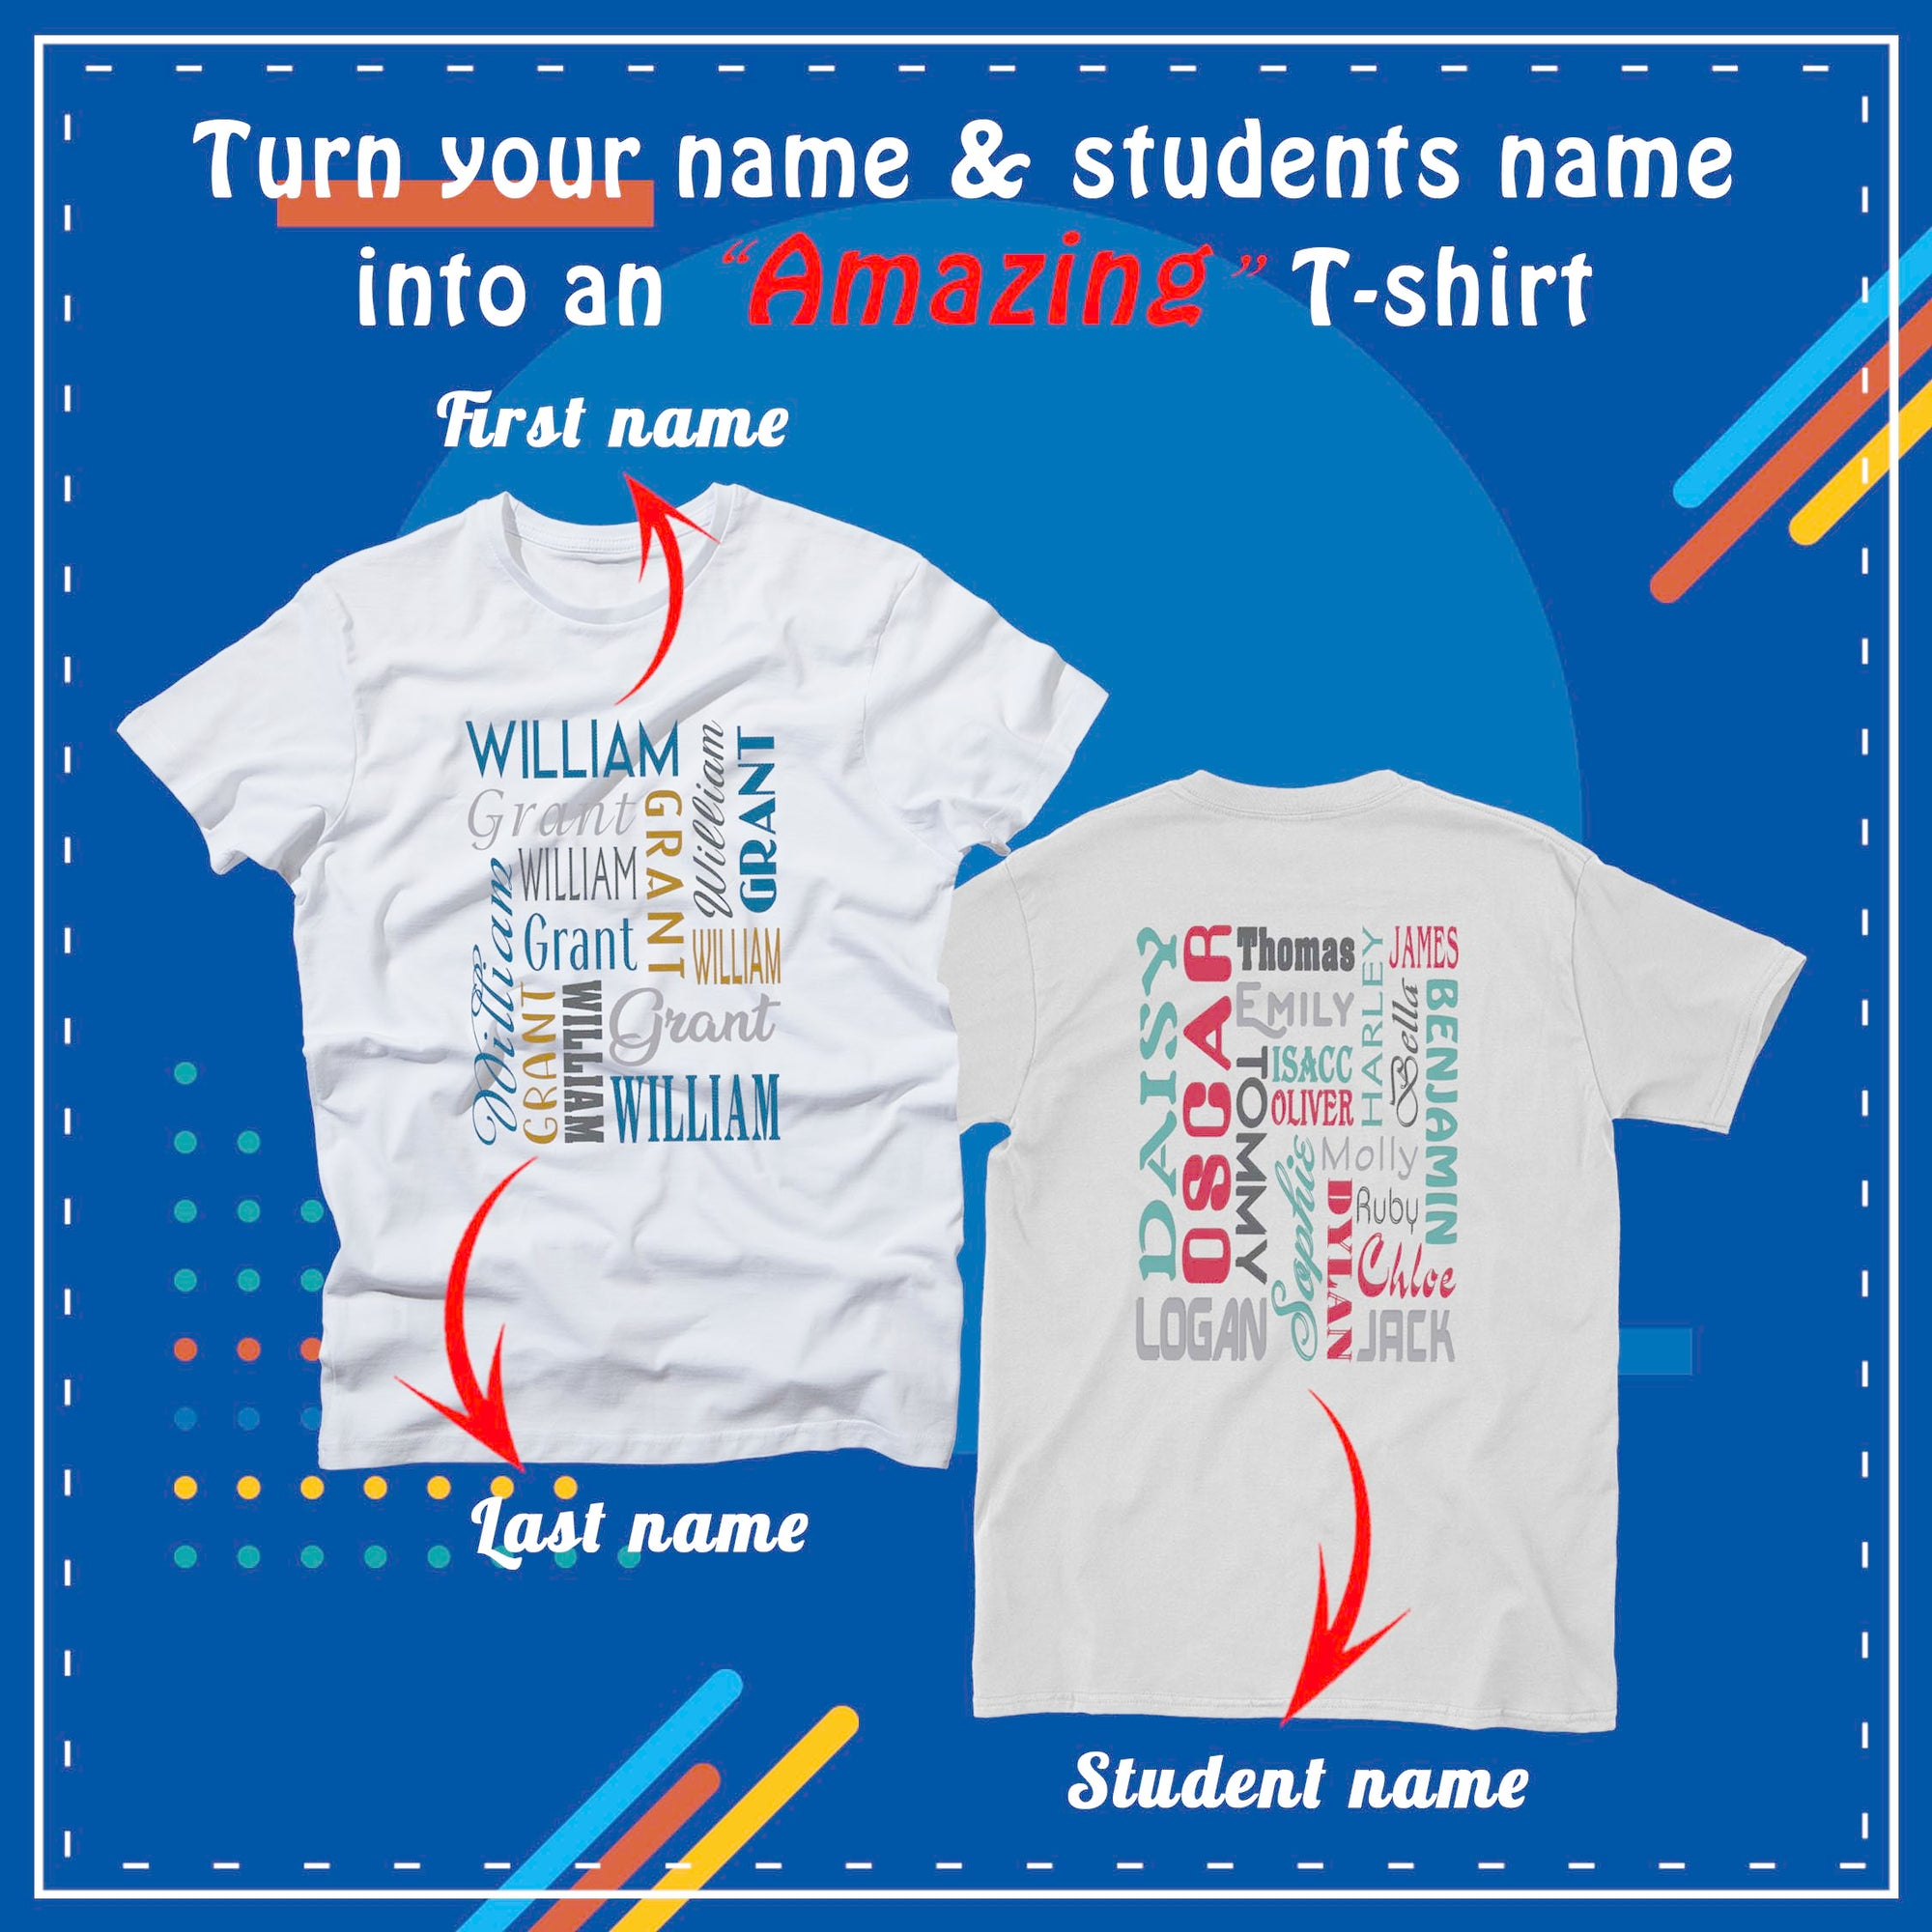 PERSONALIZED UNISEX T- SHIRT - ADD YOUR NAME & YOUR CLASS/ FAMILY NAMES ON YOUR T- SHIRT